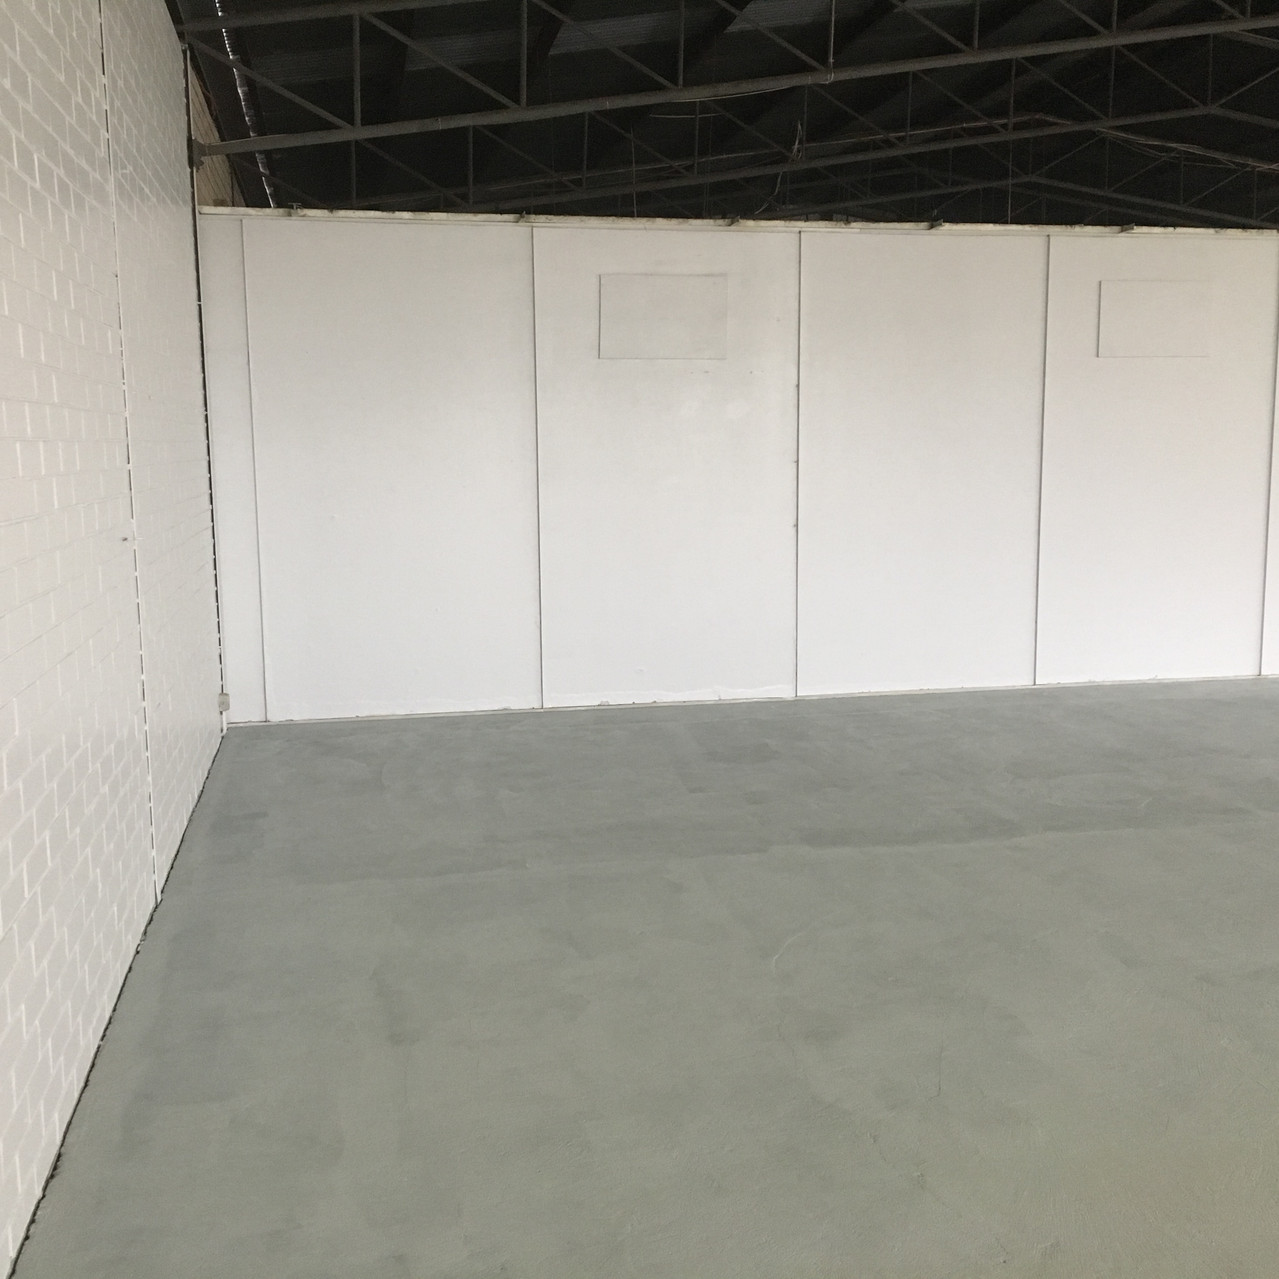 Conspar floor restoration works at this commercial warehouse in Bayswater.